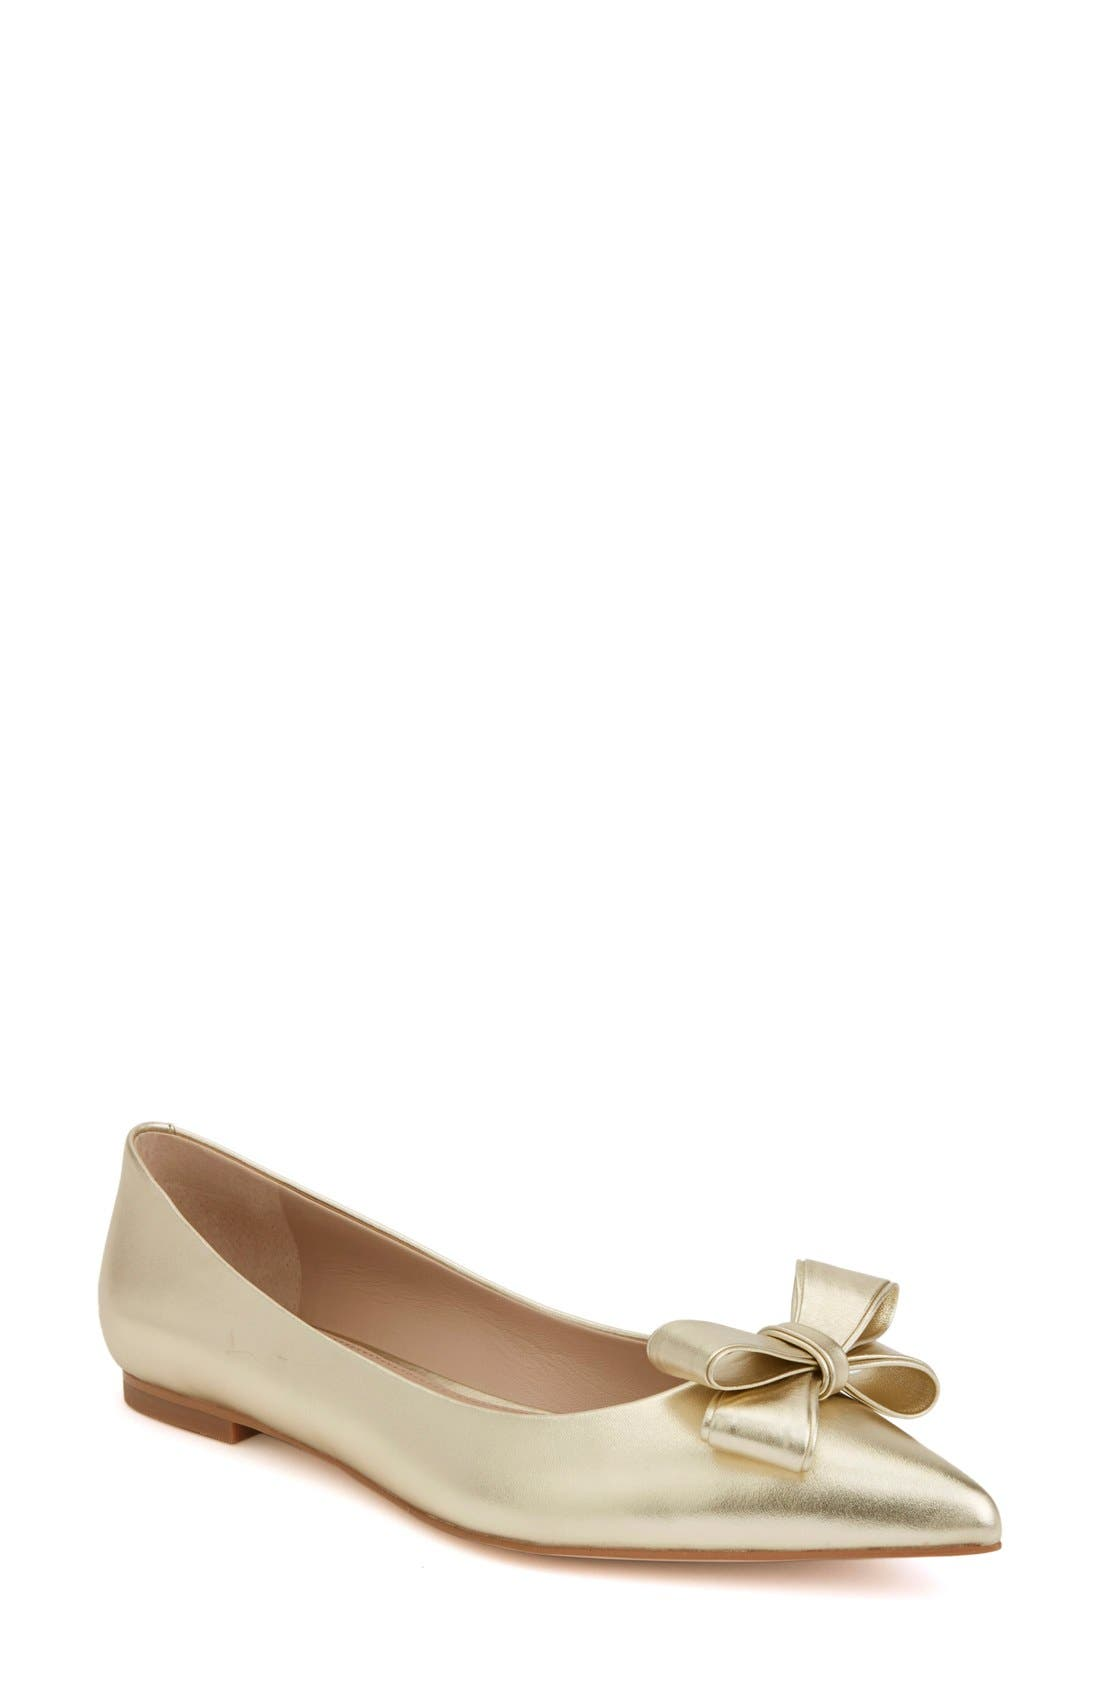 Shoes of Prey x Megan Hess Bow Flat (Women)